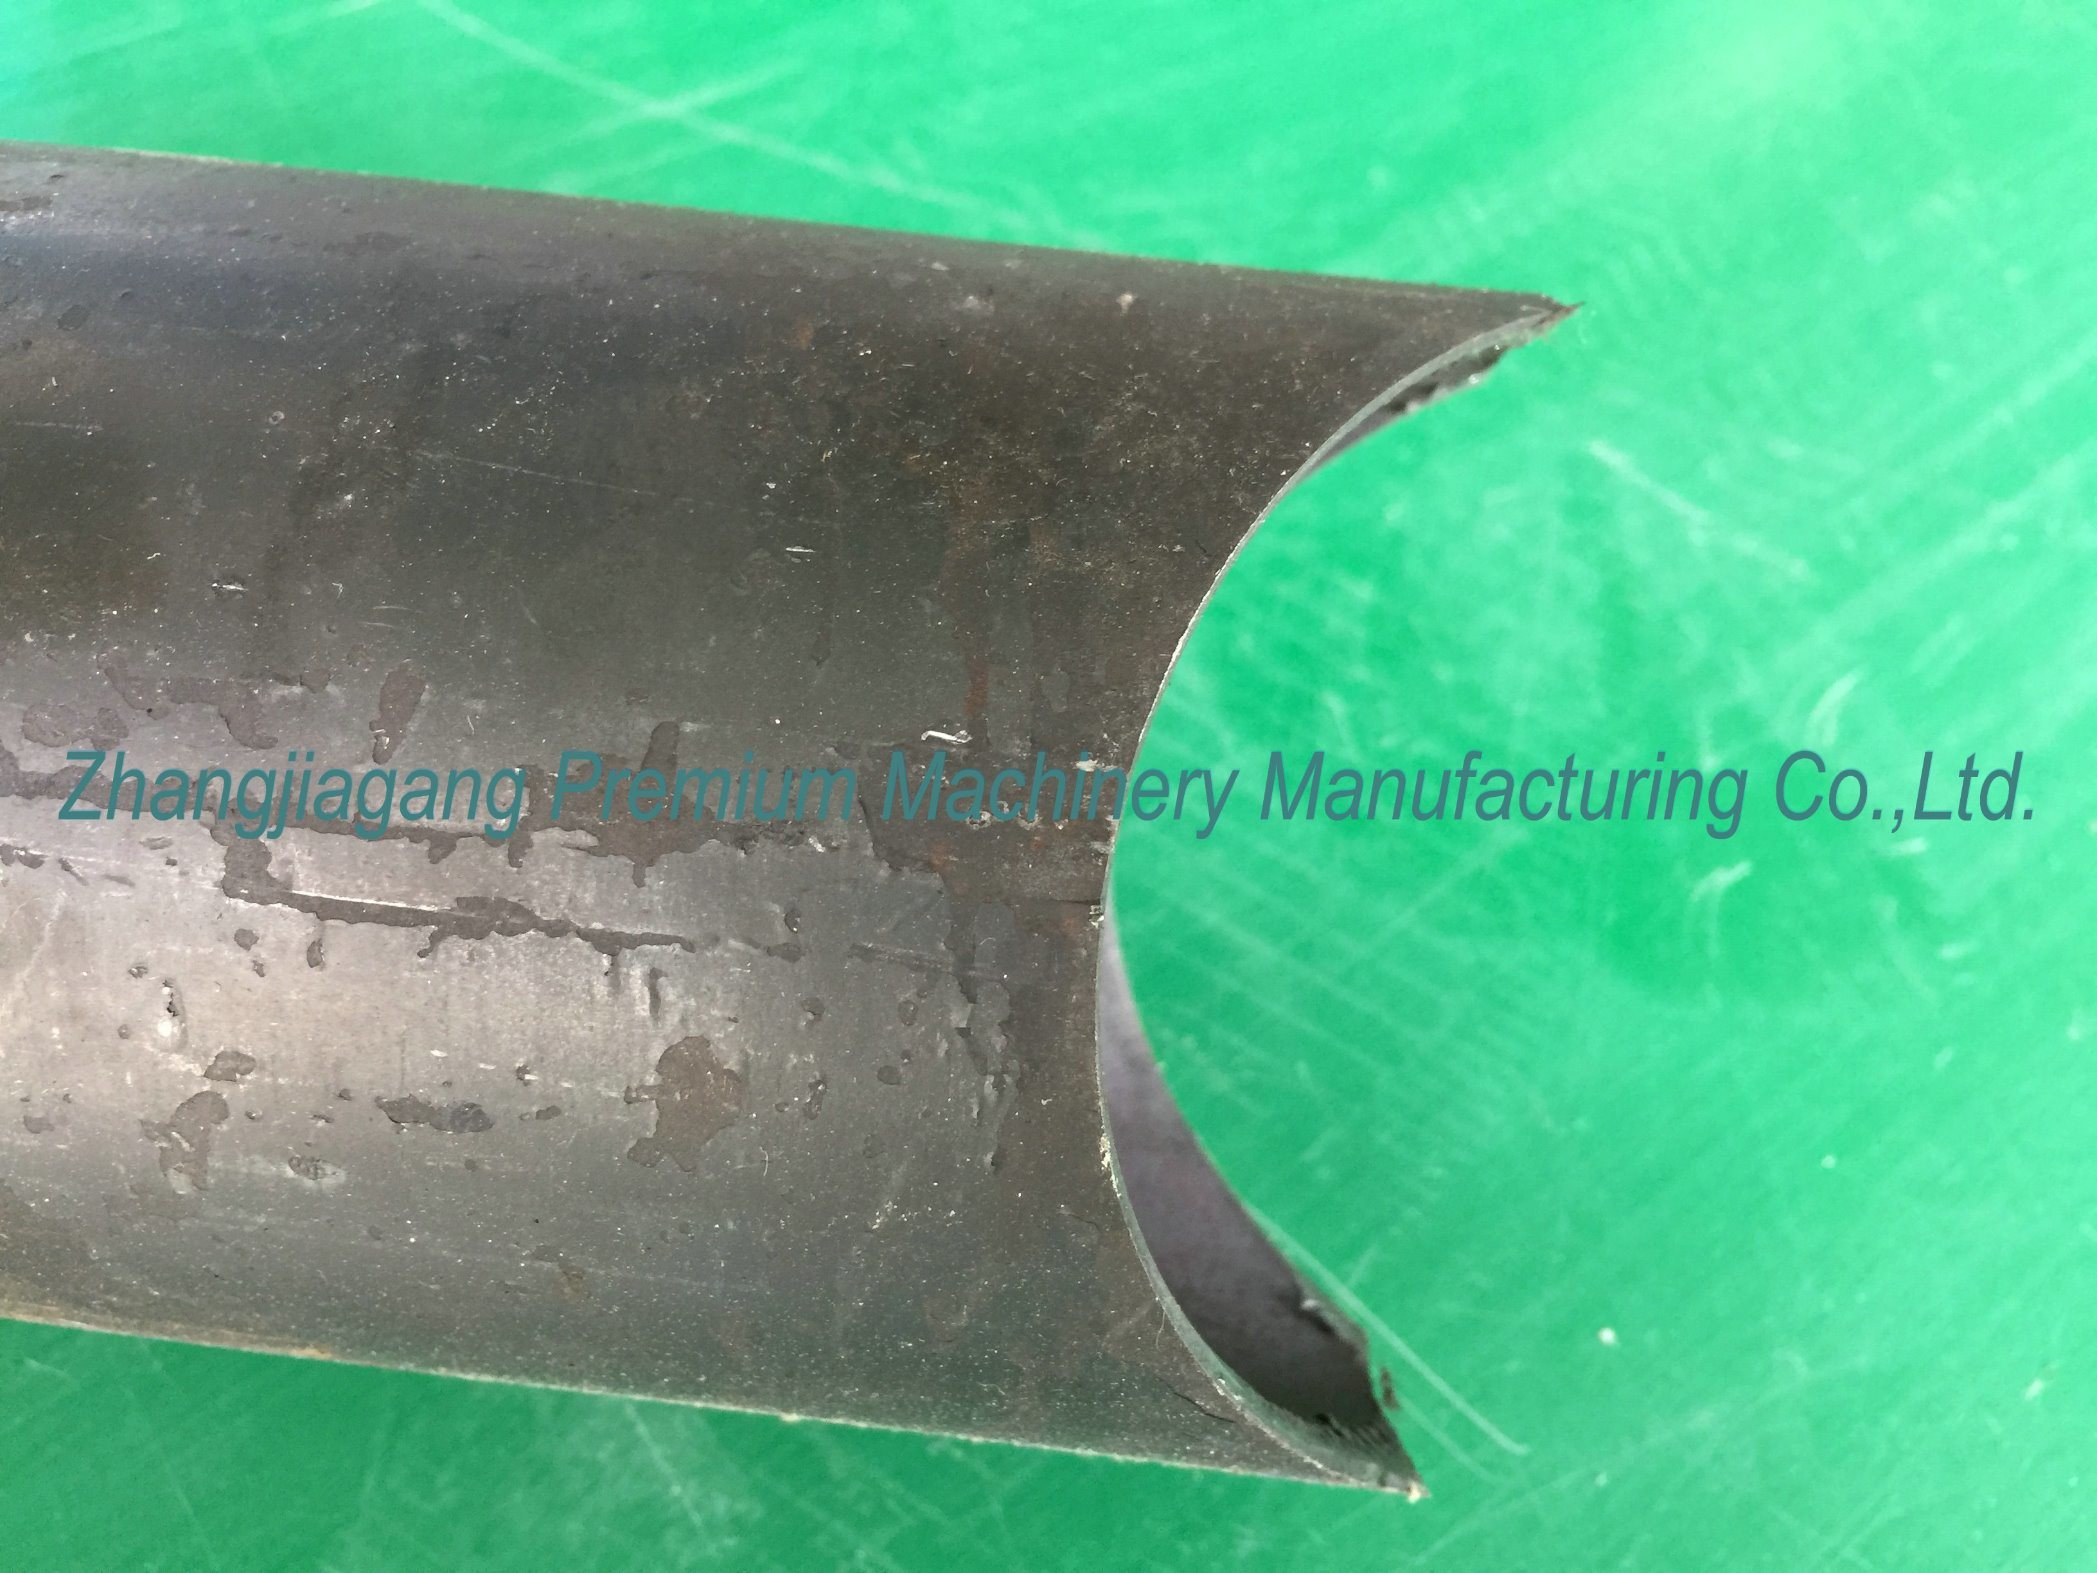 Pipe Profile Shape Forming Plm-CH100 Pipe End Arc Punching Machine